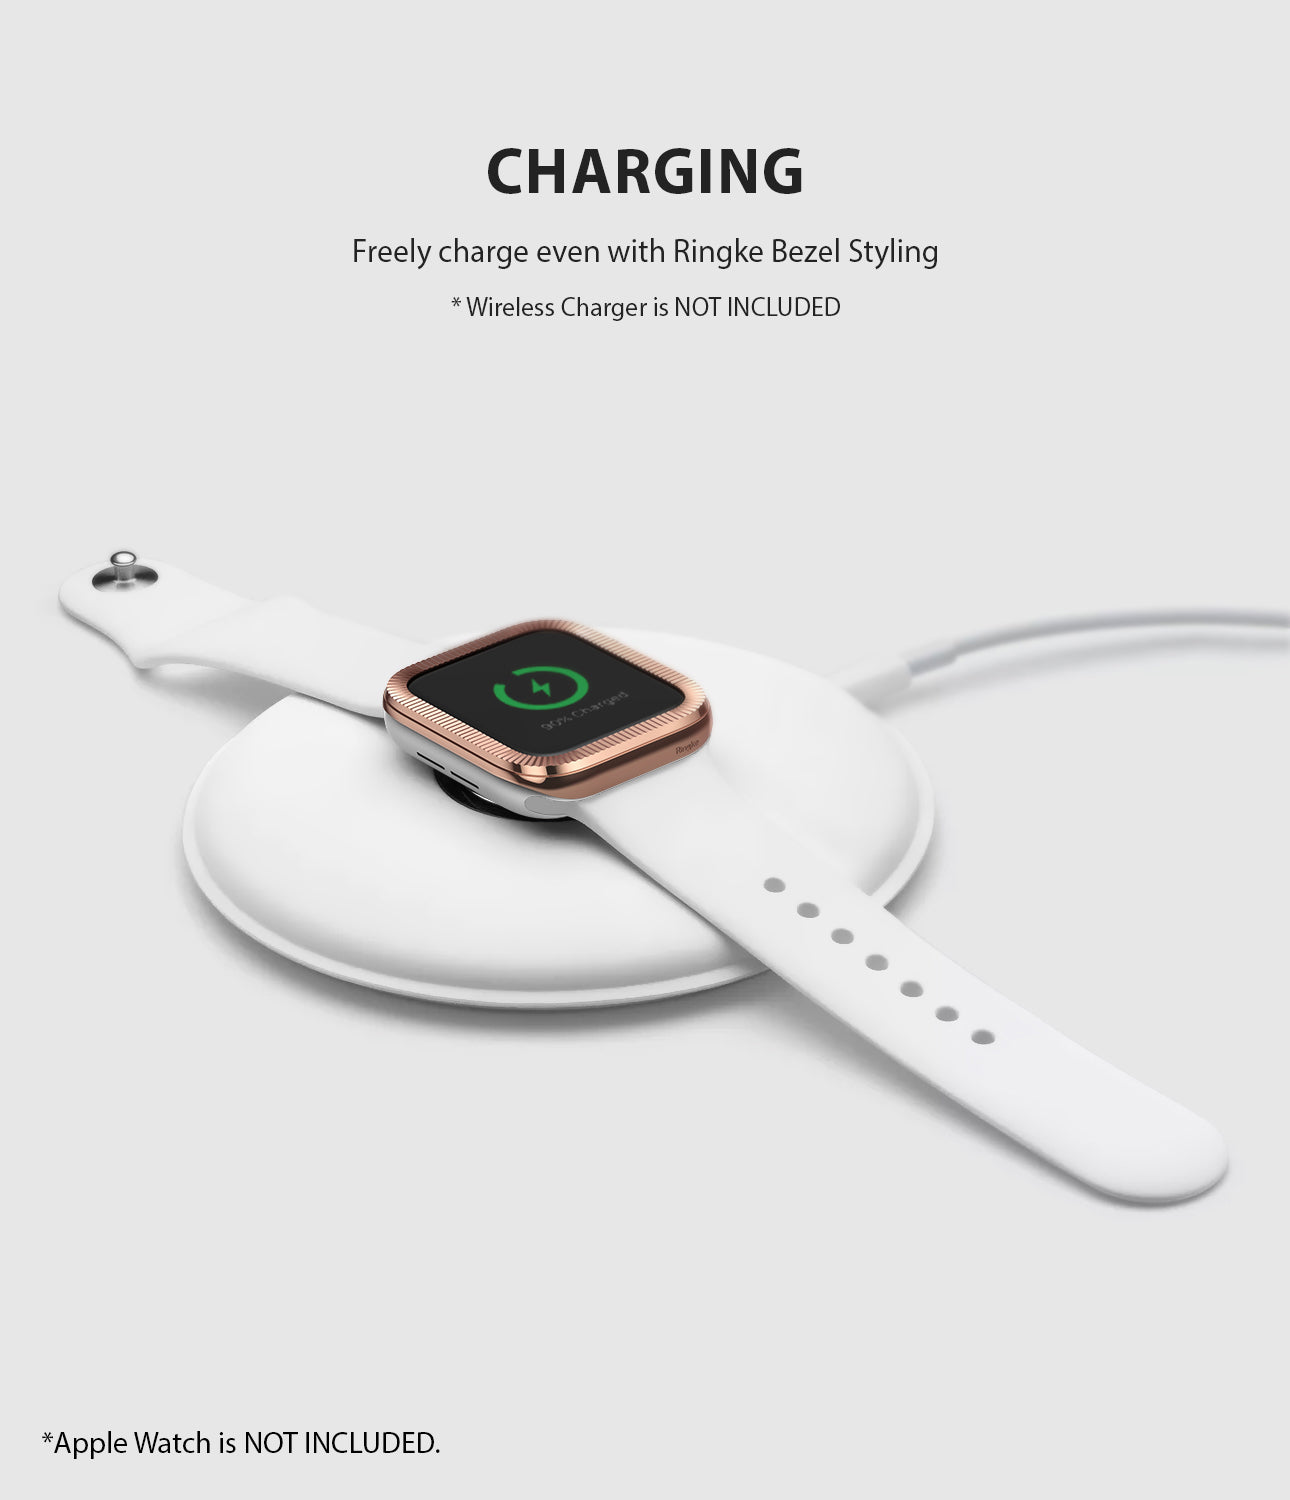 apple watch 3 2 1 38mm case ringke bezel styling stainless steel frame cover 38-43 wireless charging compatible